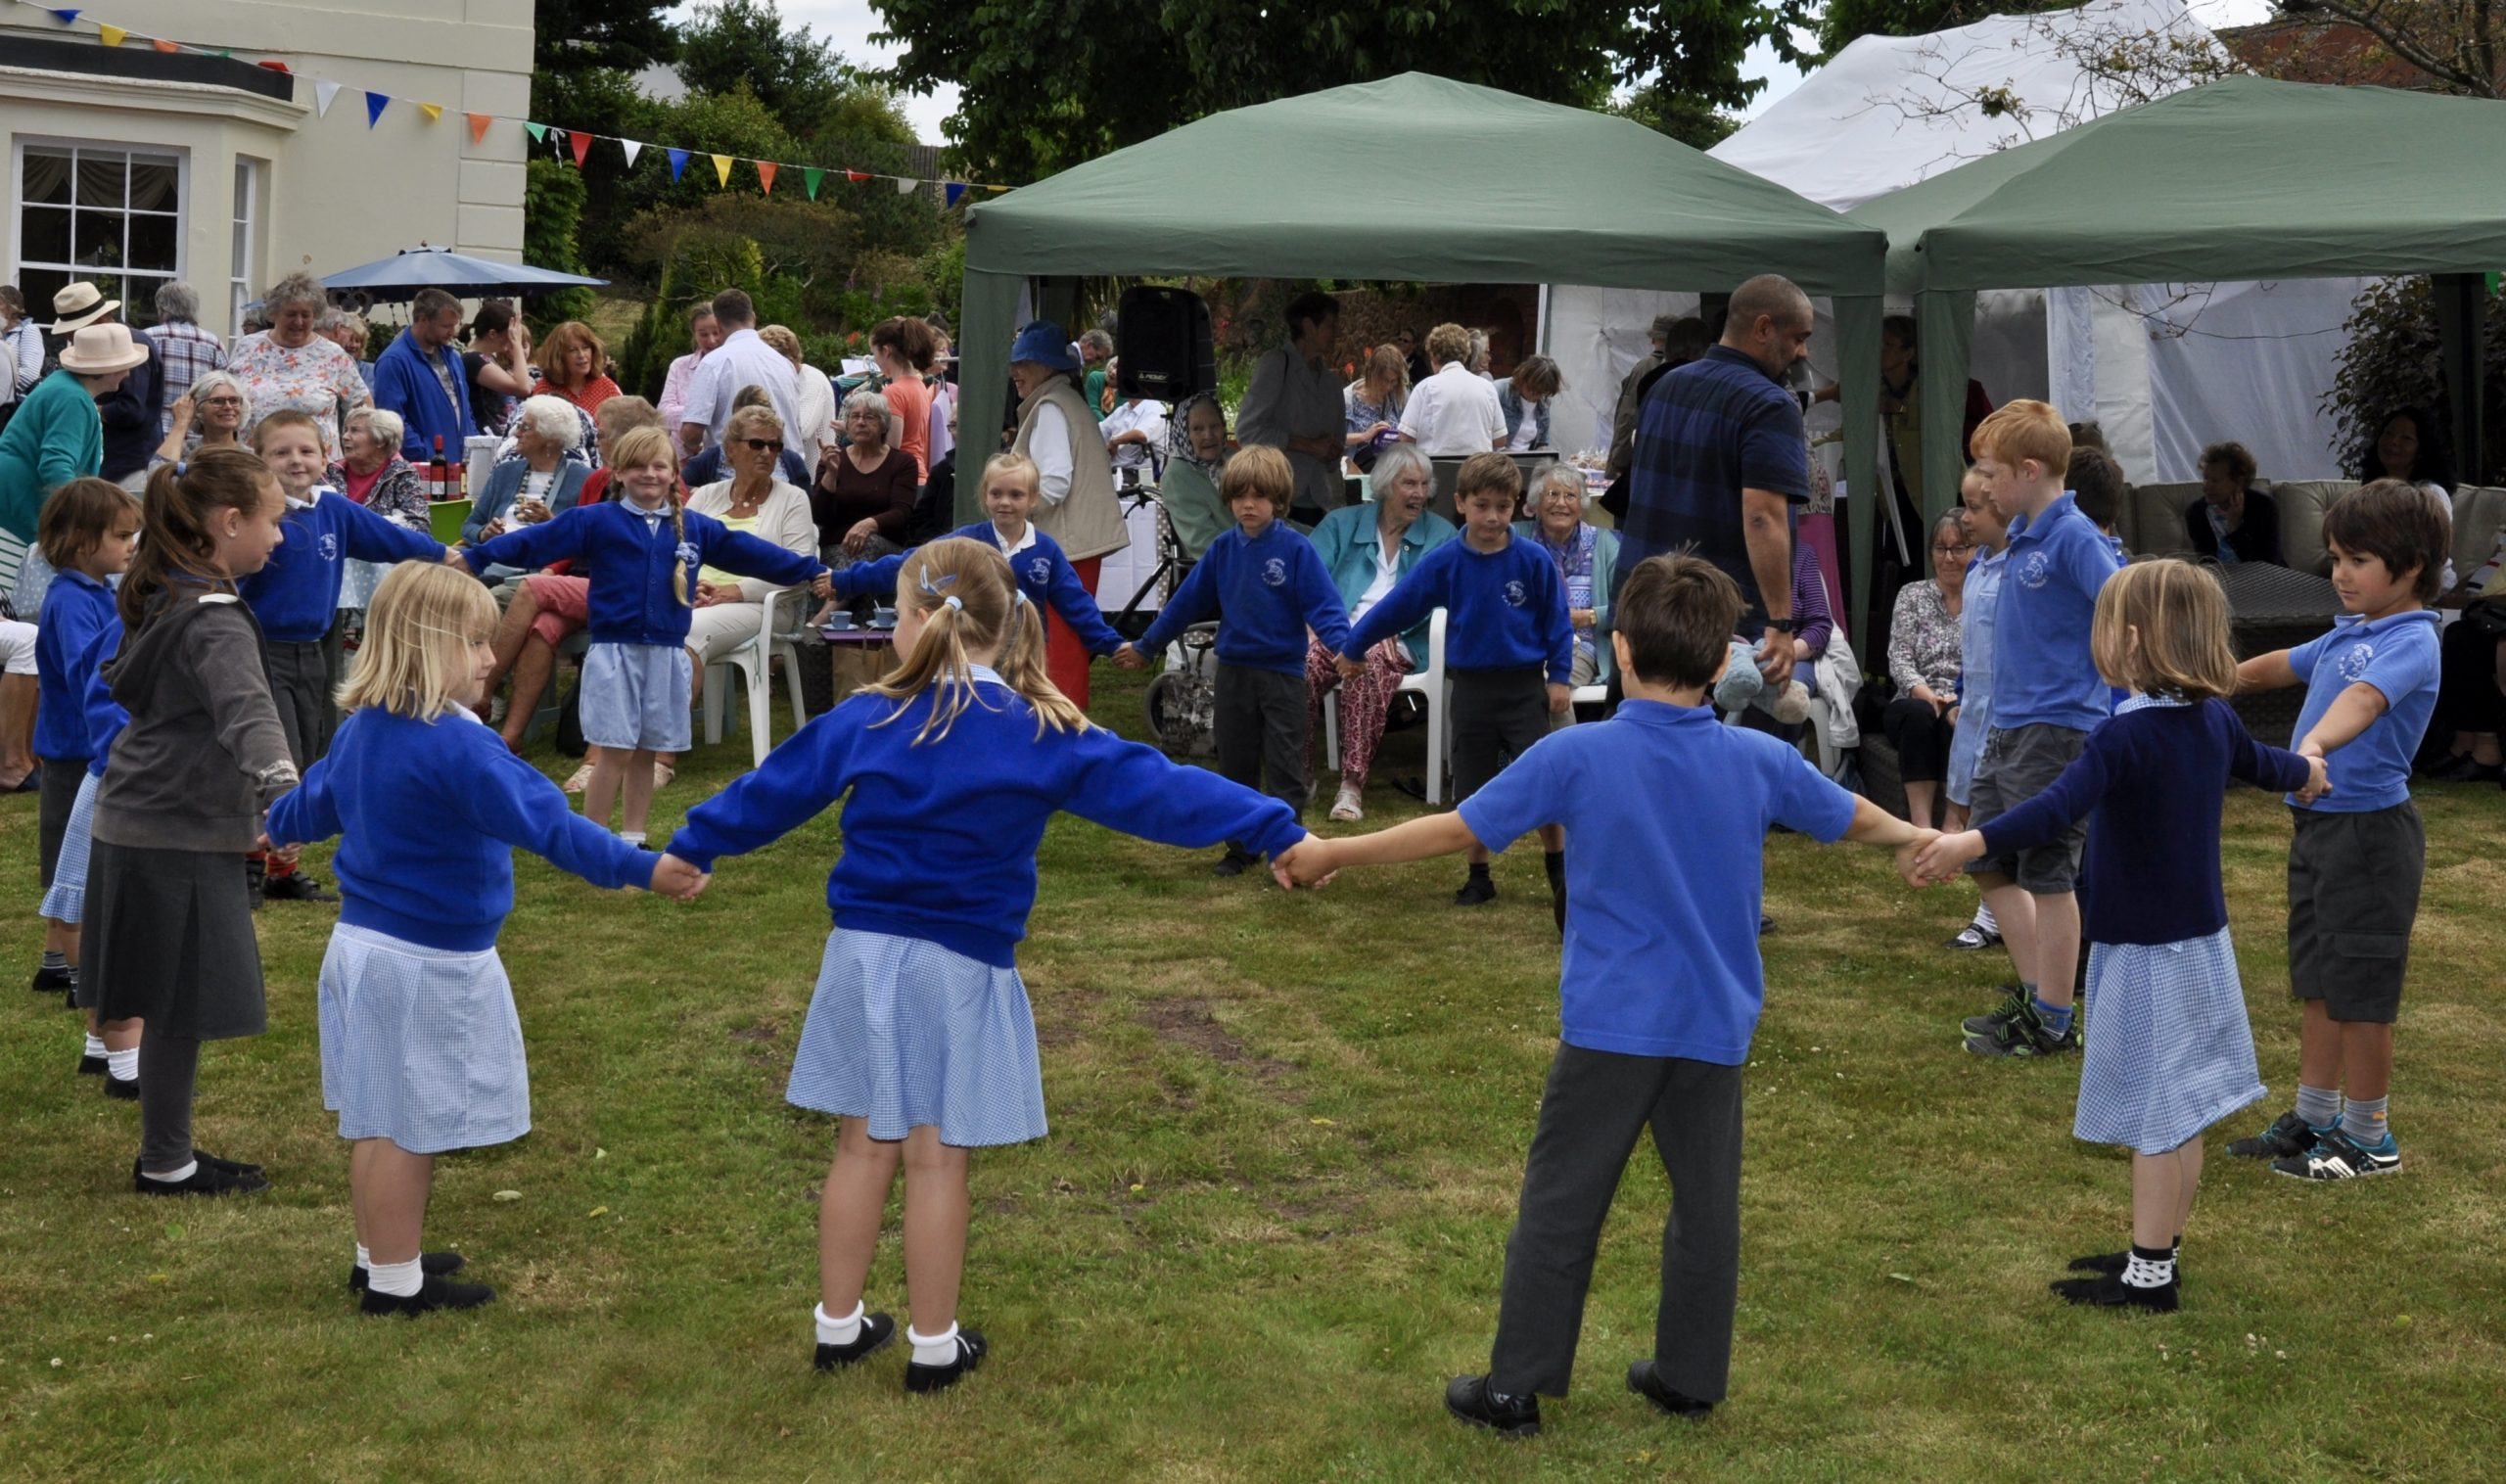 Care home celebrates 30 year anniversary with garden fête